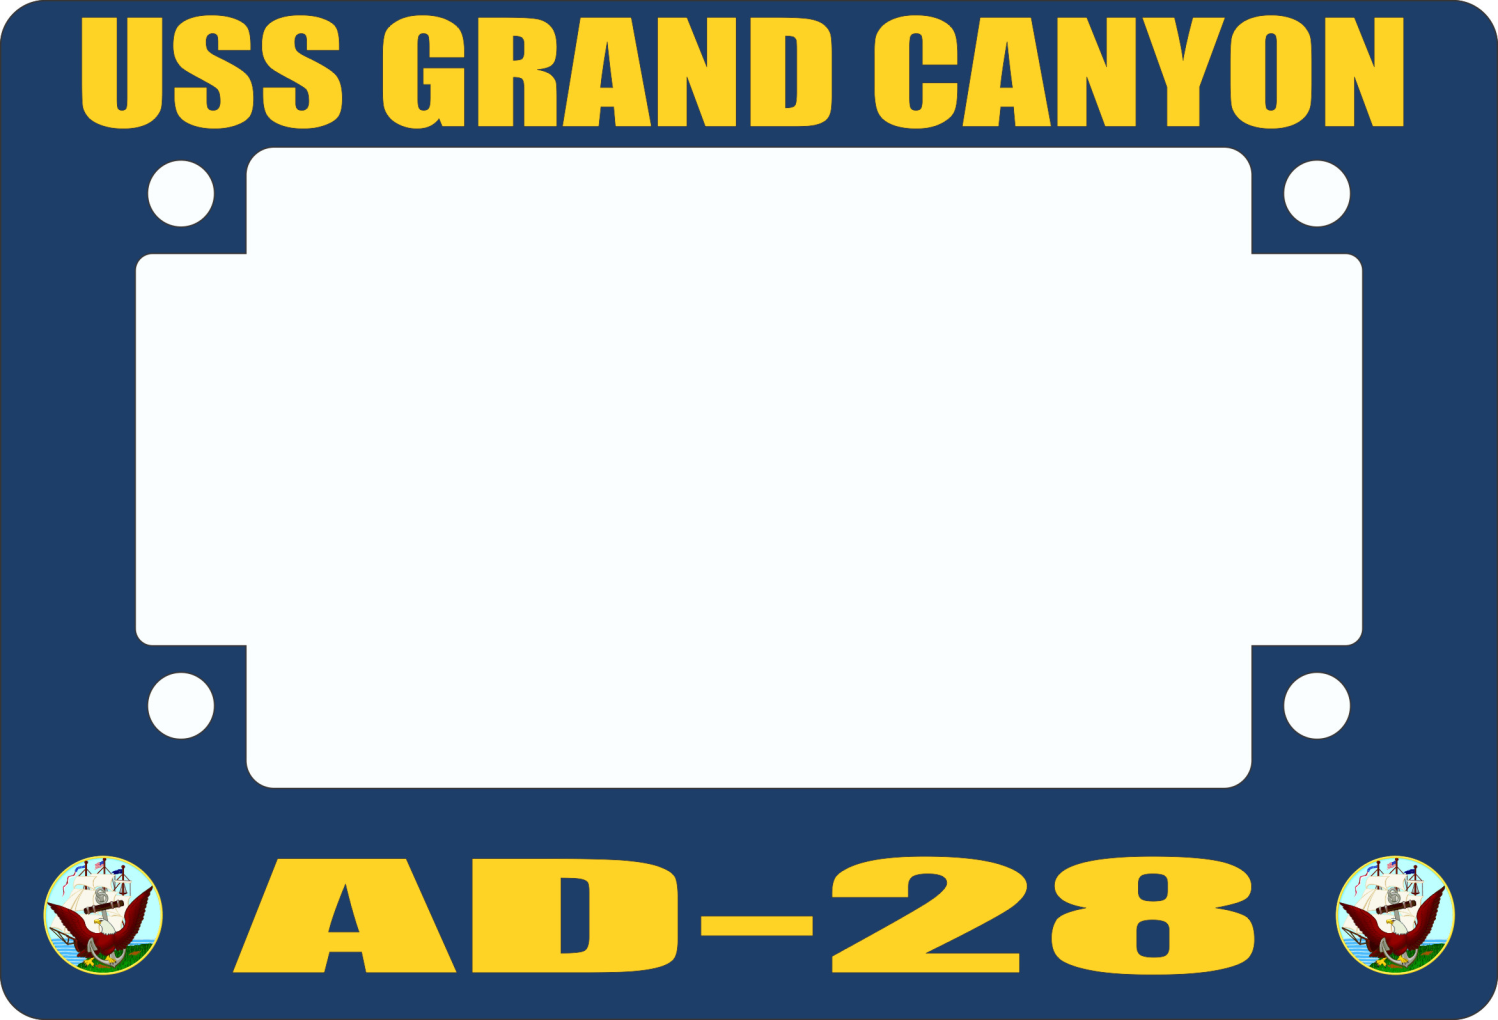 USS Grand Canyon AD-28 Motorcycle Frame